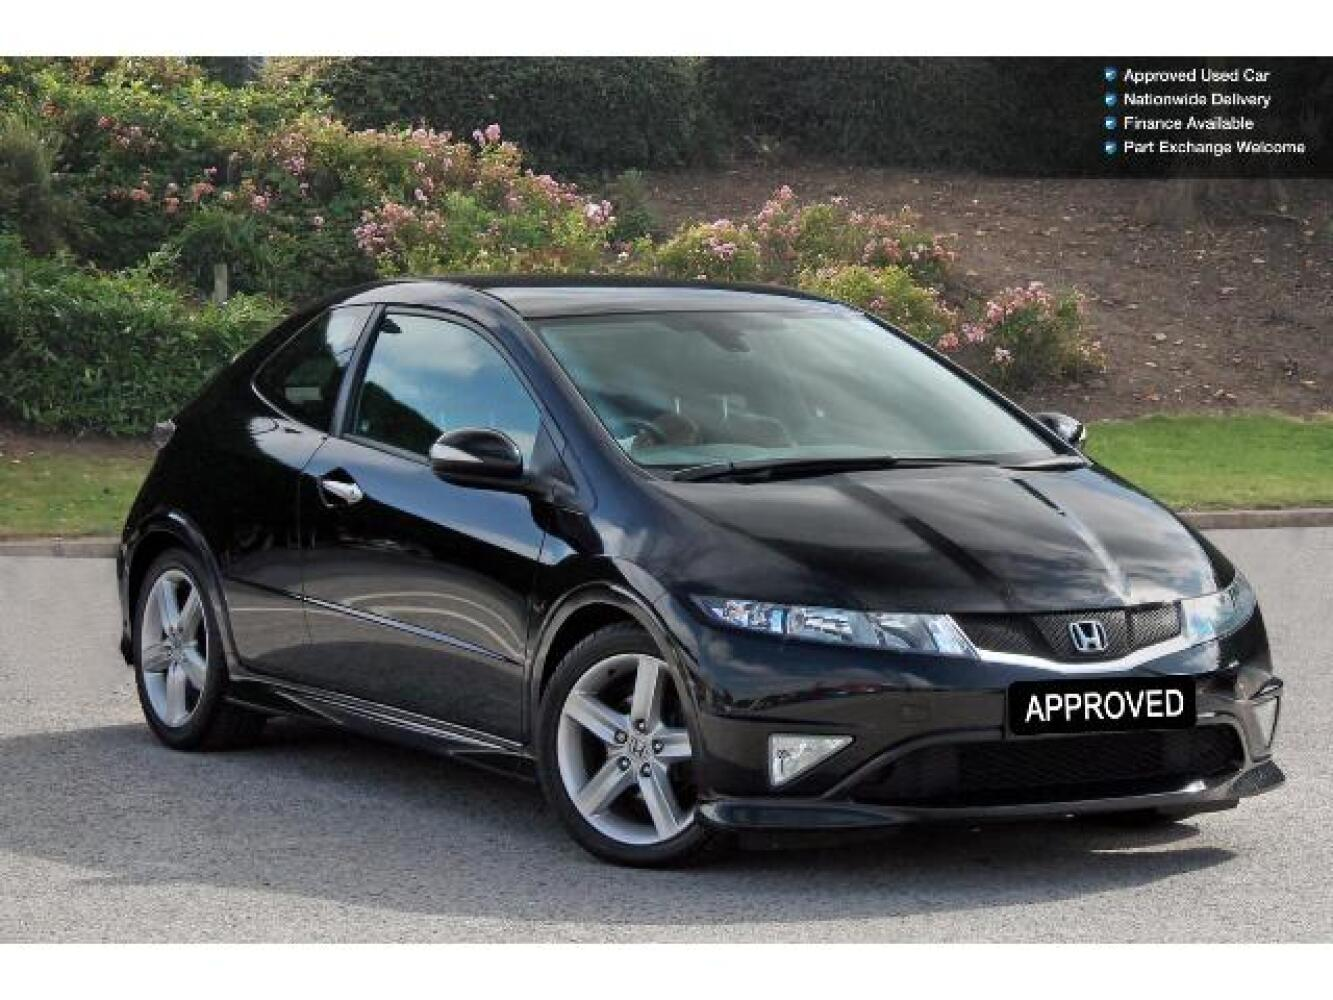 used honda civic 1 8 i vtec type s gt 3dr petrol hatchback for sale farnell land rover. Black Bedroom Furniture Sets. Home Design Ideas